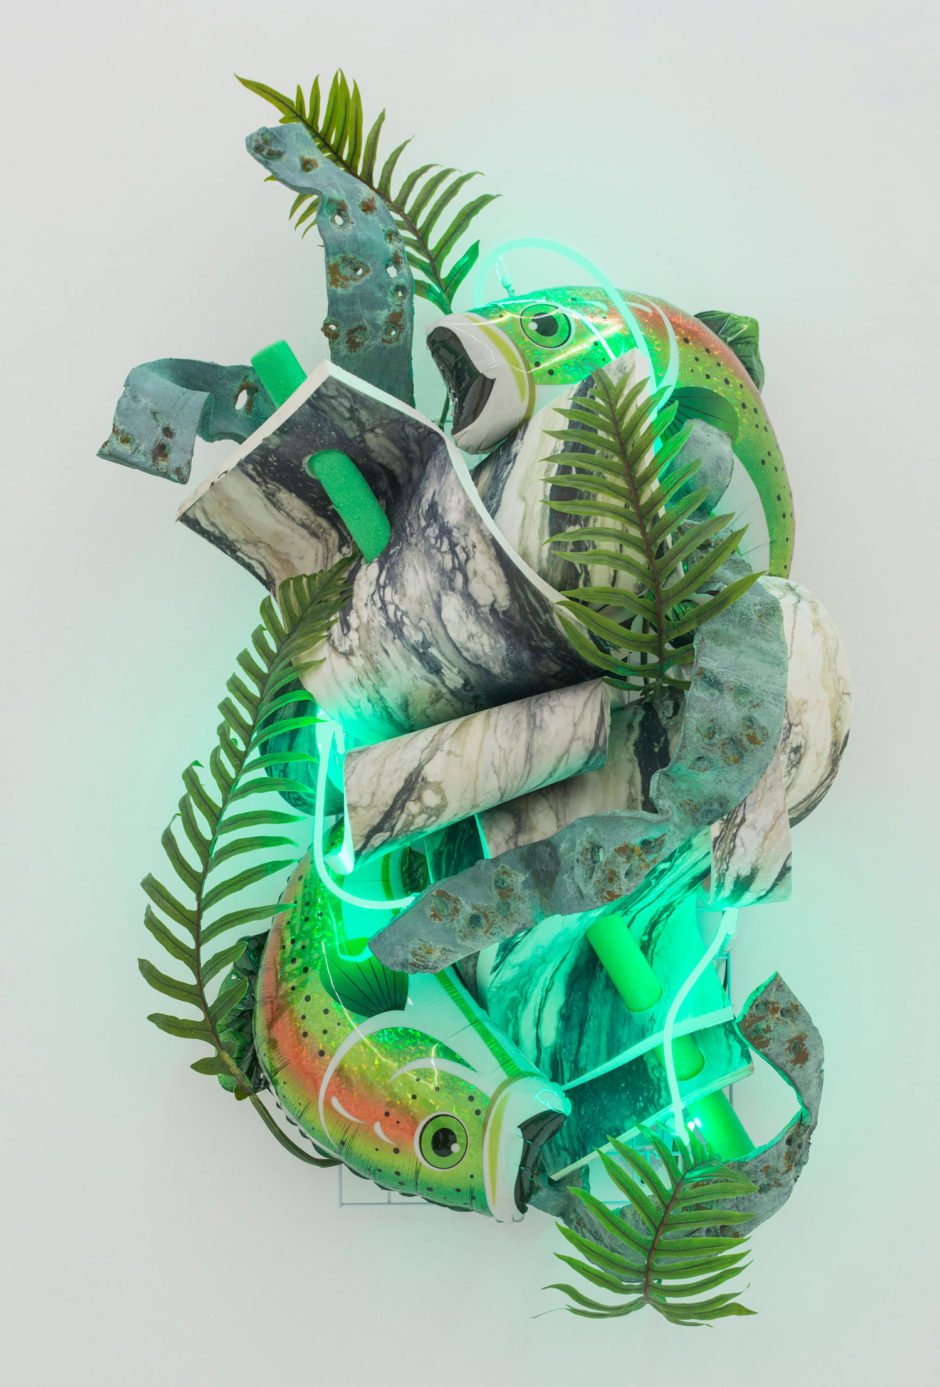 """Pisces"", 2016, painted steel, printed E.V.A. foam, plastic, faux leaves, neon, resin with bronze patina, resin and fiberglass preserved mylar, 76 x 38 x 24 inches, 198 x 96.5 x 61 cm"